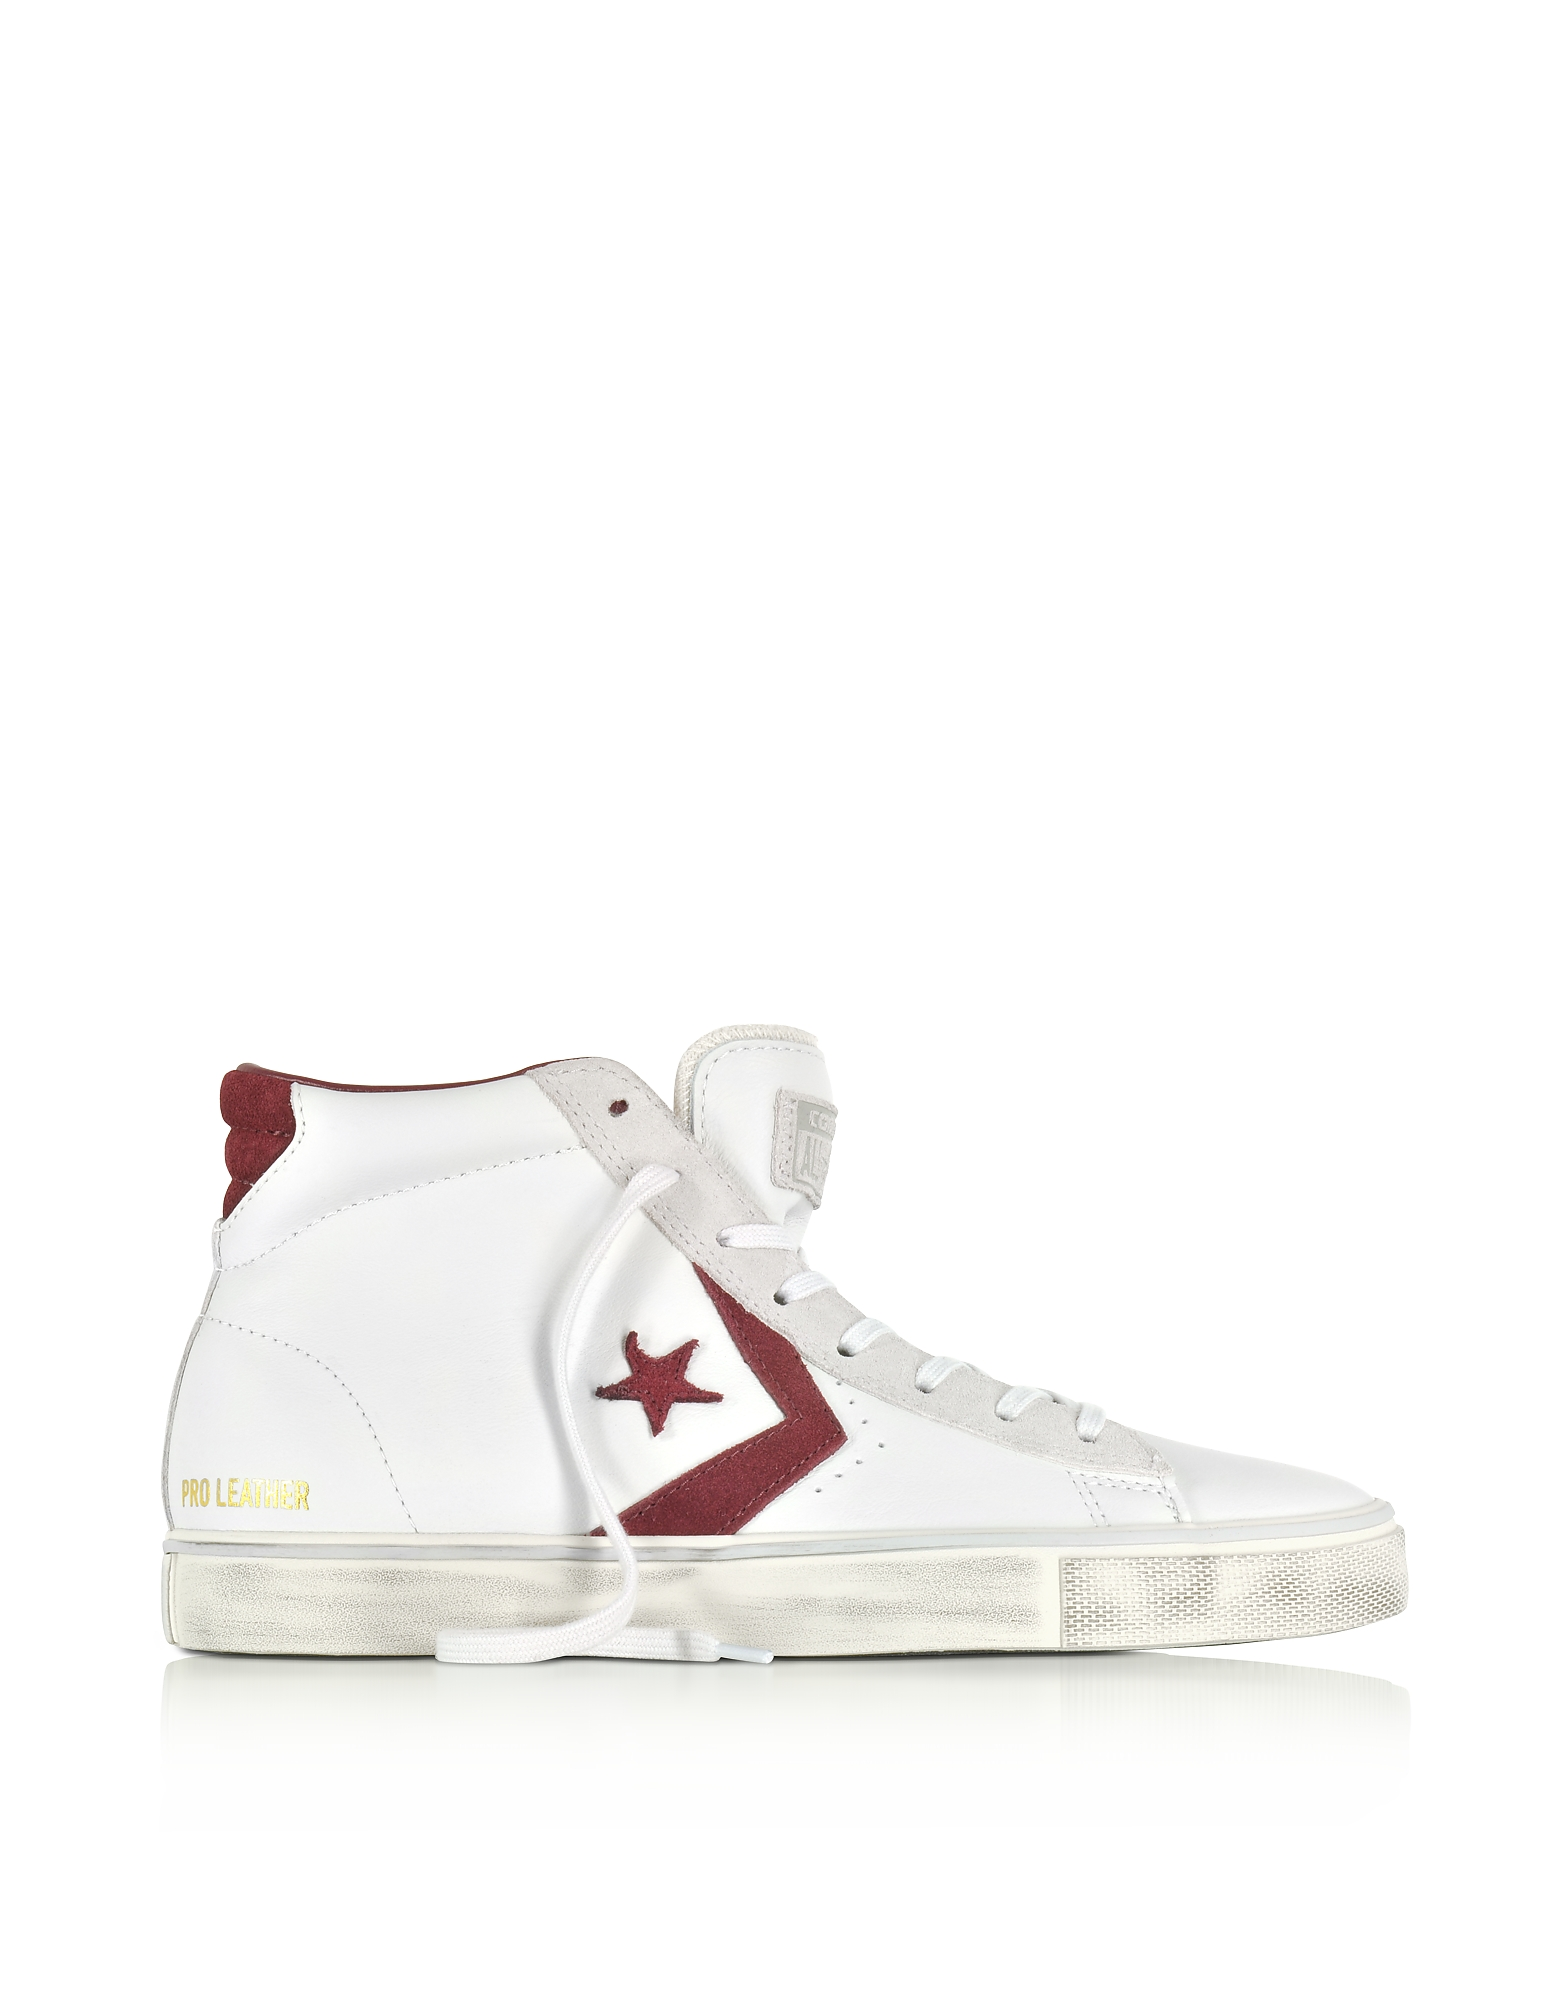 Converse Limited Edition Shoes, Pro Leather Vulc Mid Distressed White Leather and Burgundy Suede Sne